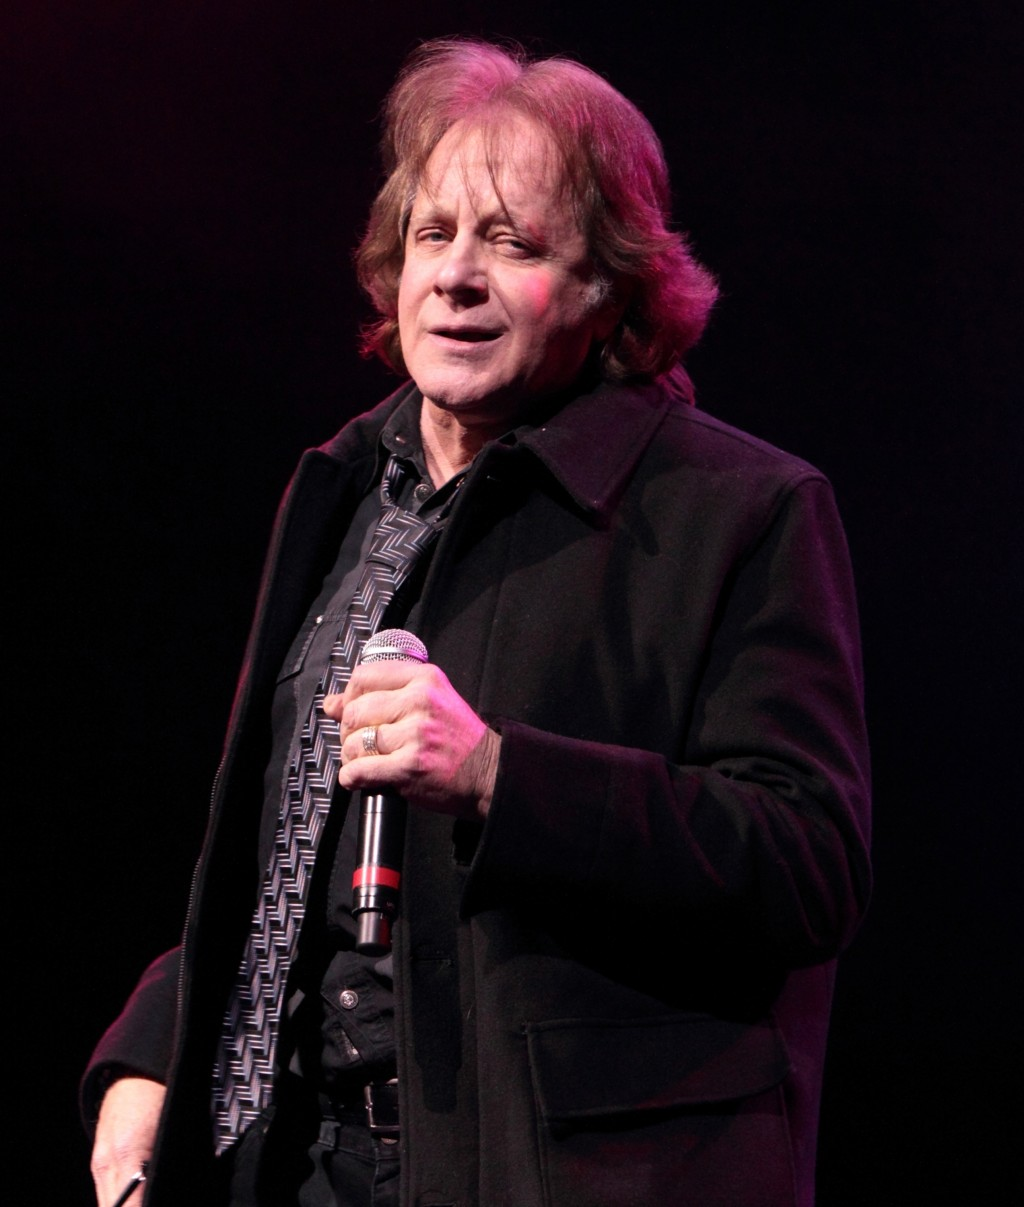 """Musician Eddie Money performs at the American Music Theatre in Lancaster, Pa., on Jan. 31, 2013. The rock star known for such hits as """"Two Tickets to ..."""